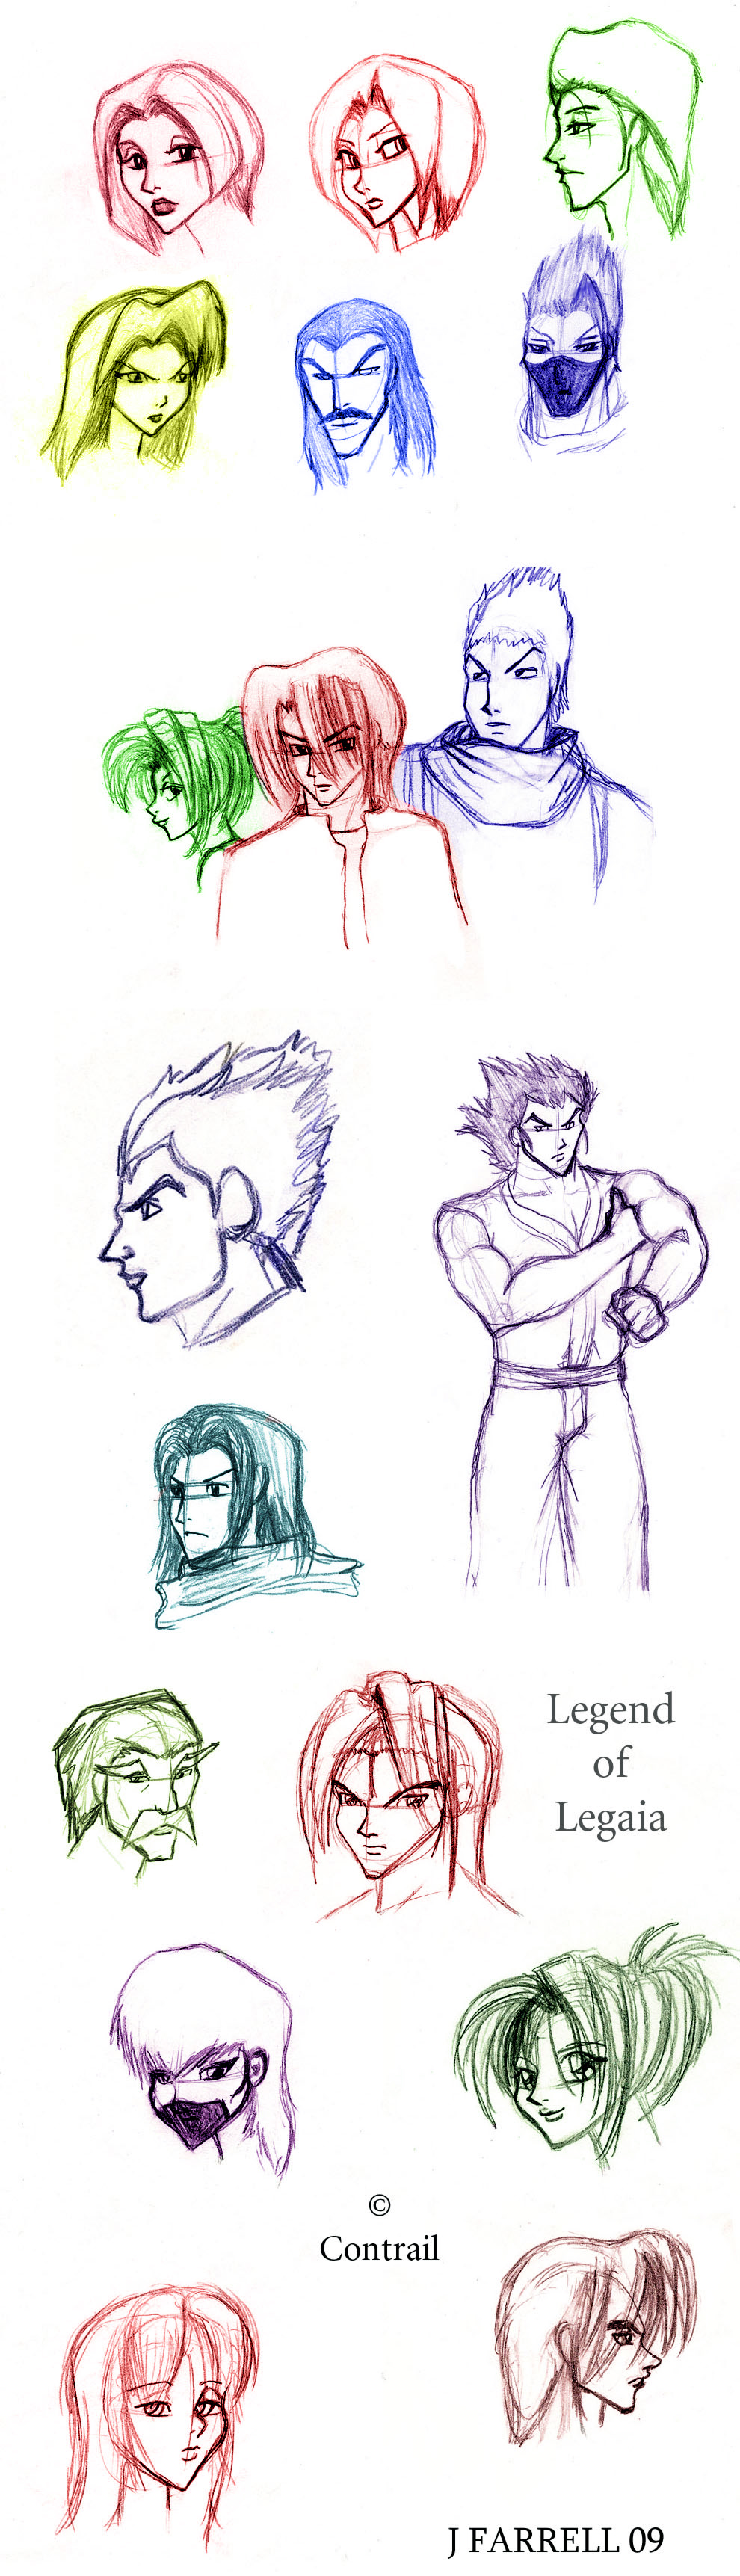 Legend of Legaia Sketches by darkmane